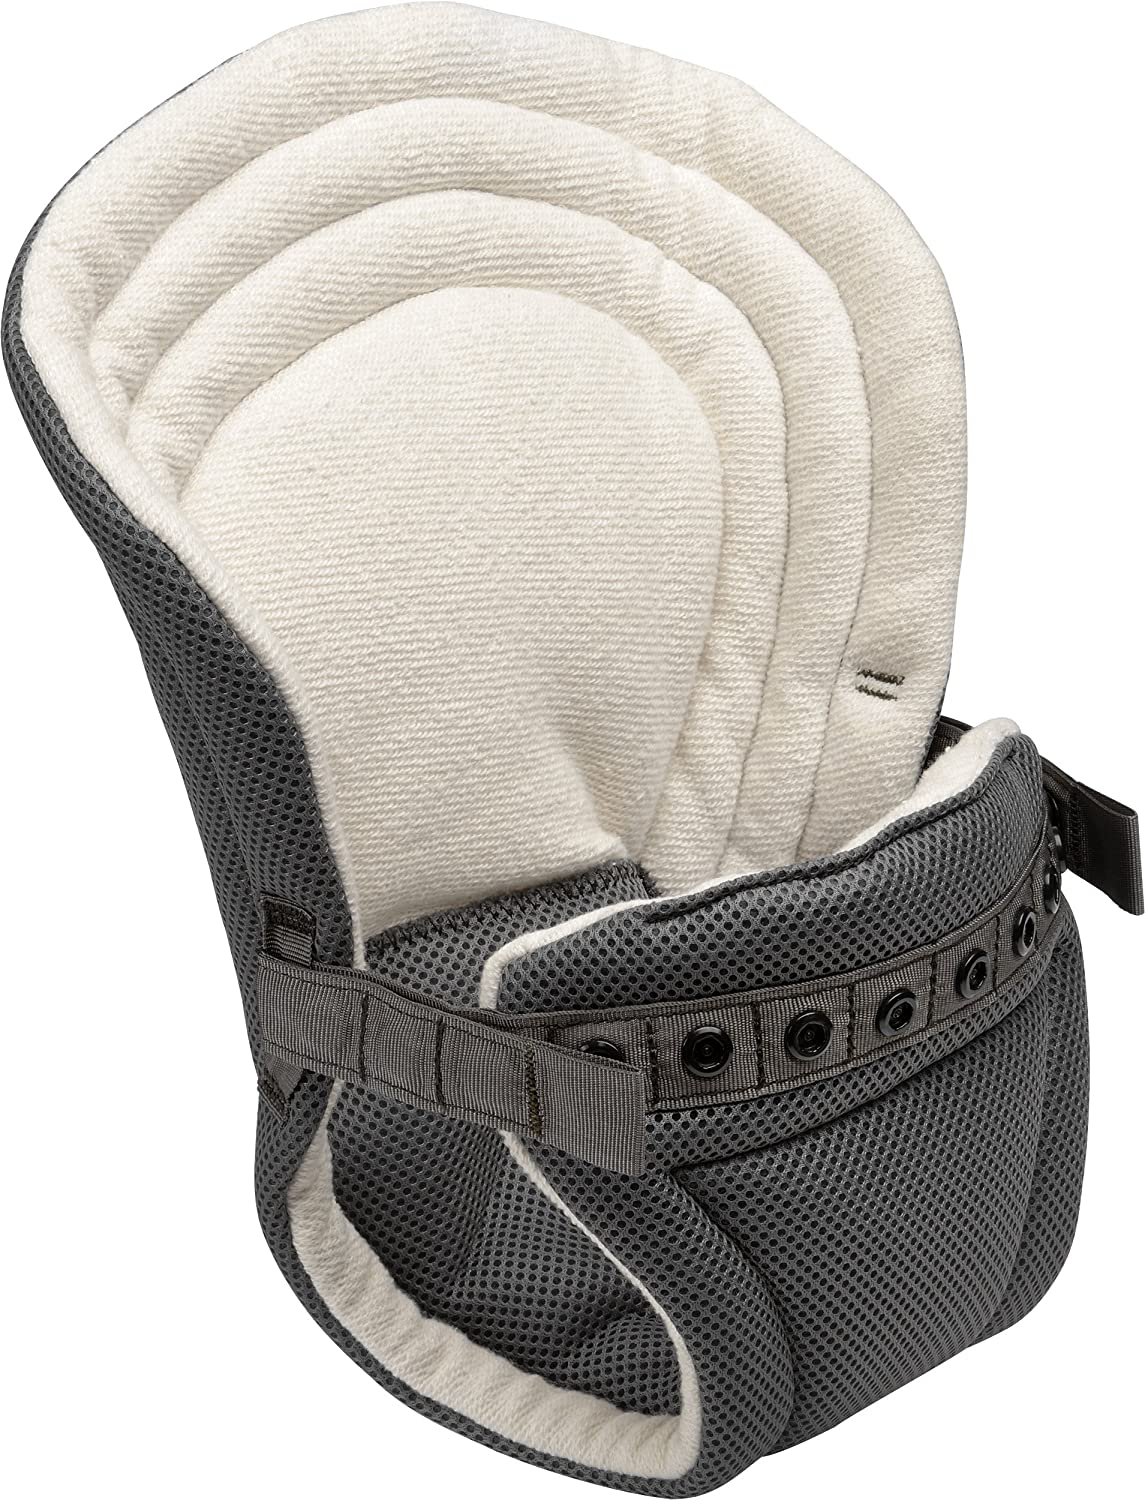 Onya Baby Carrier Booster - Chocolate Chip OBMR3124